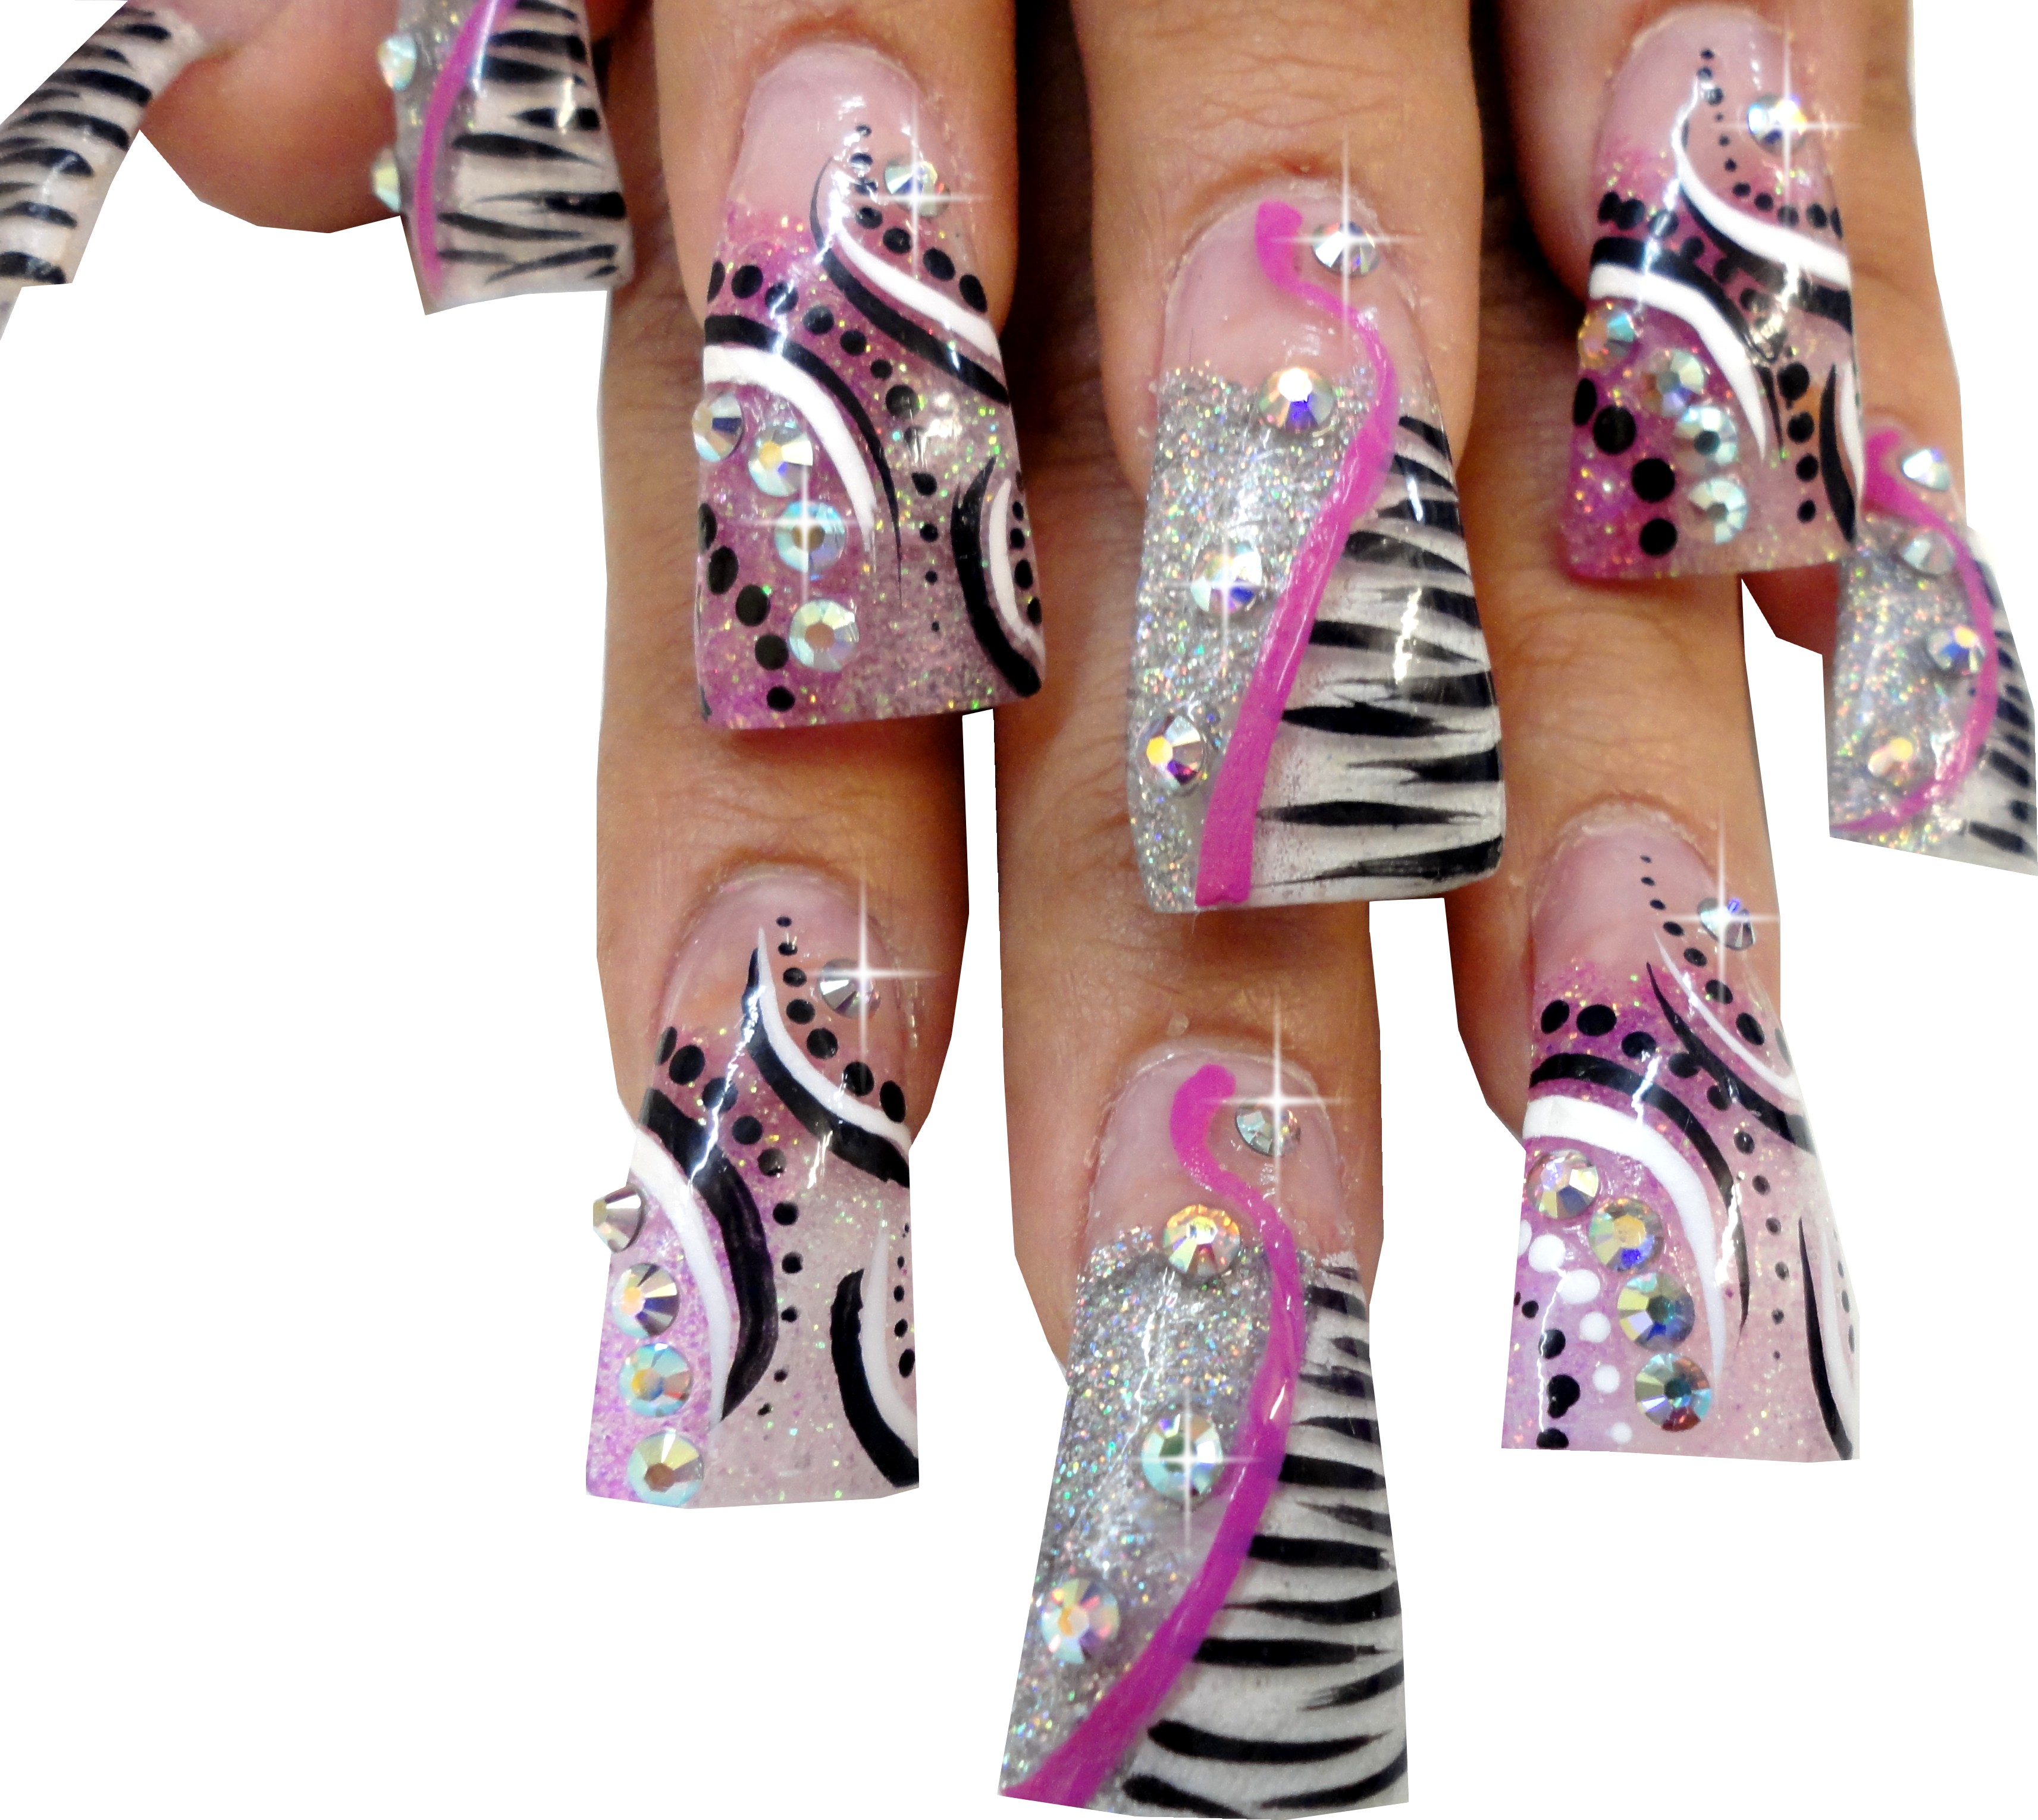 duck flare nail tips are unique in shape to add drama to any nail art design choose from crystal clear natural and white - Nail Tip Designs Ideas